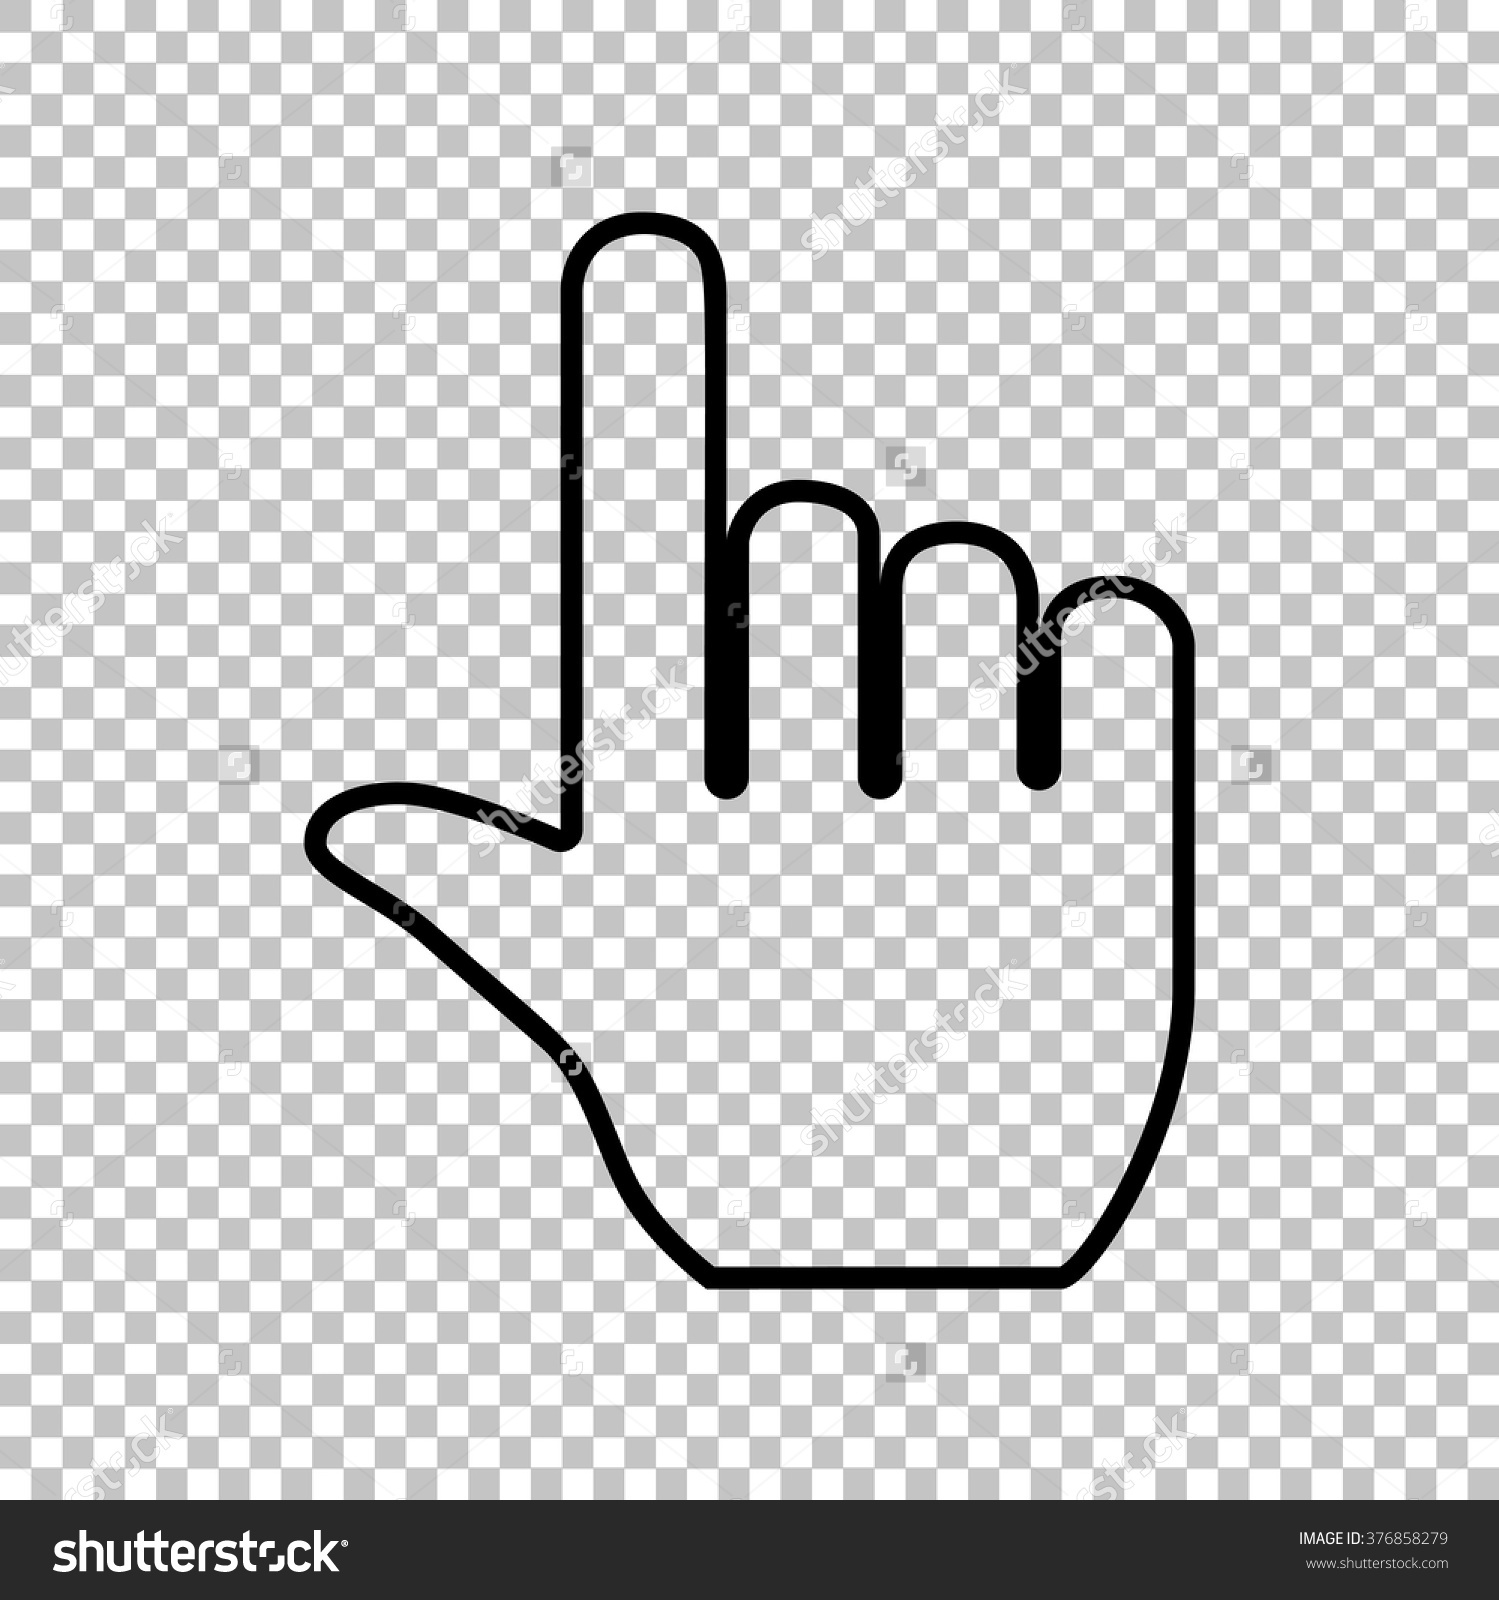 Mouse pointer clipart no background png black and white stock Hand Sign Flat Style Icon On Stock Vector 376858279 - Shutterstock png black and white stock